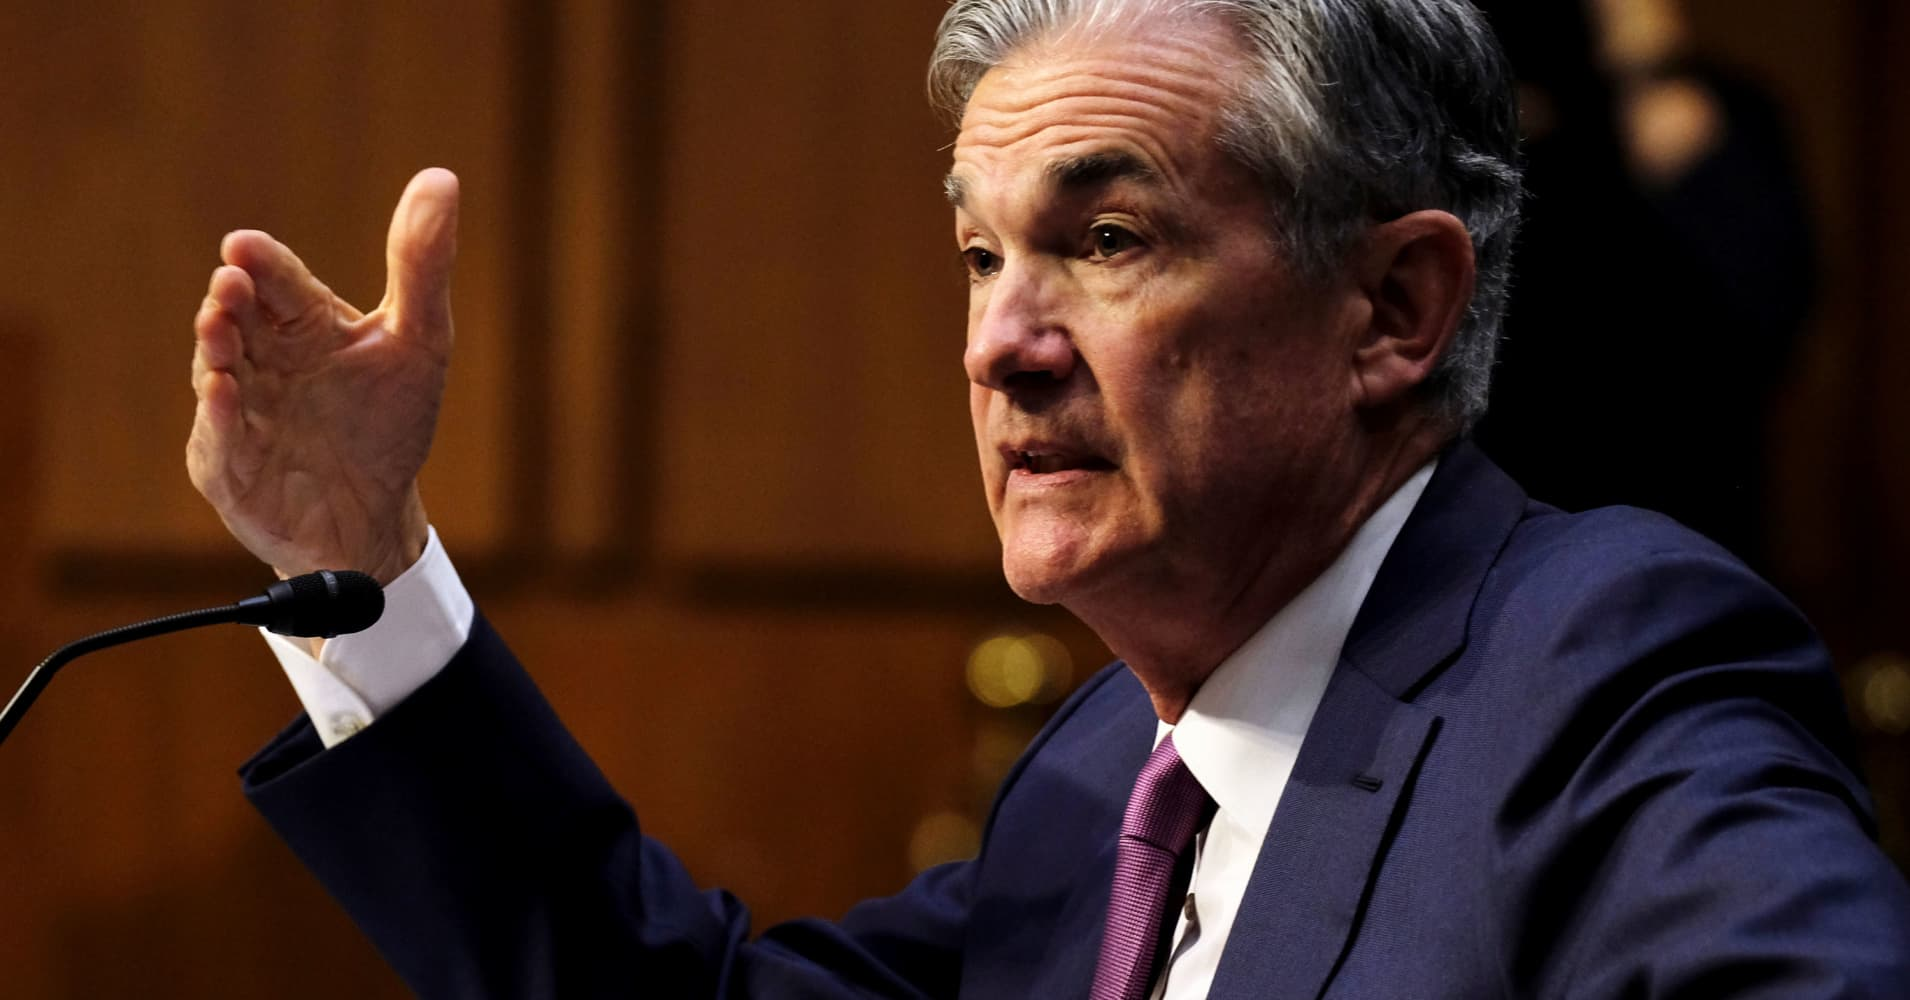 It's not too soon for a Fed interest rate cut, according to this chart